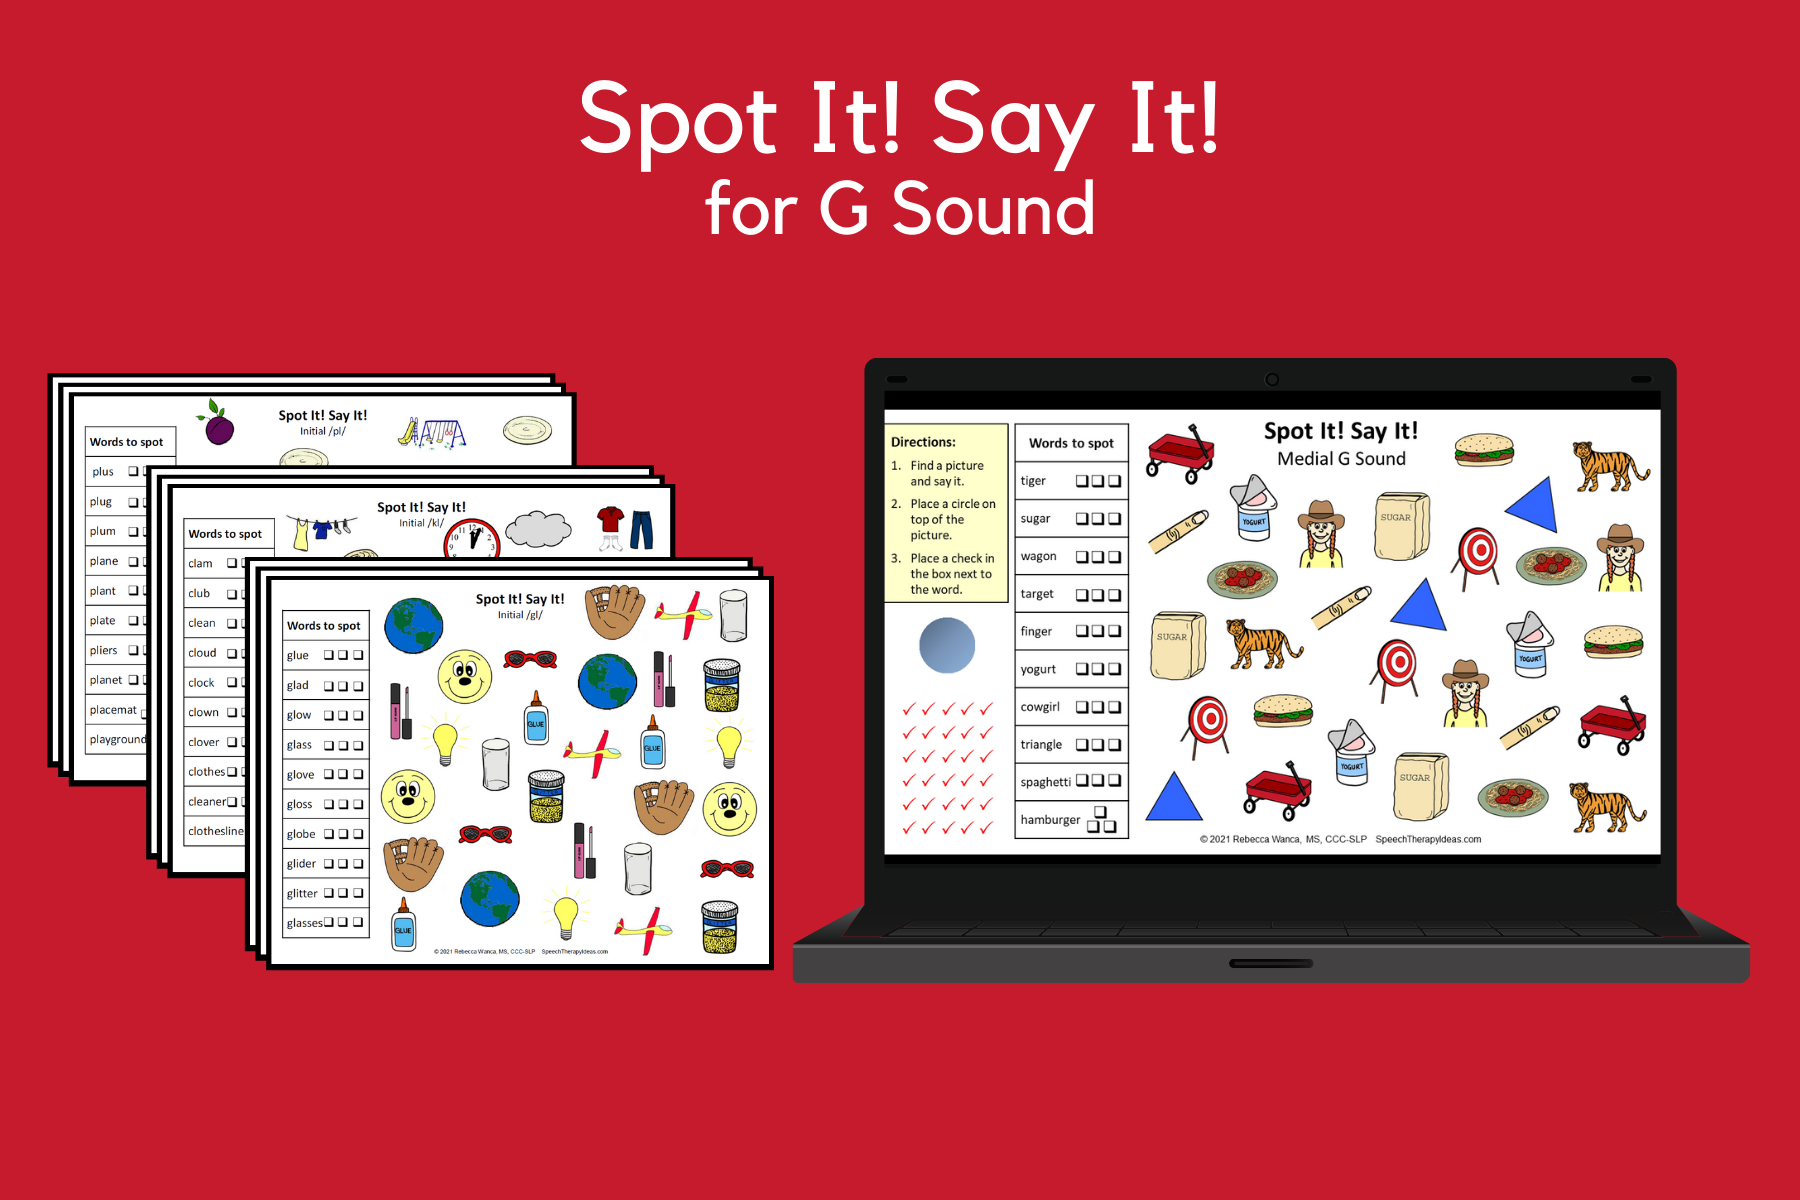 Spot It! Say It! Pages For G Sound